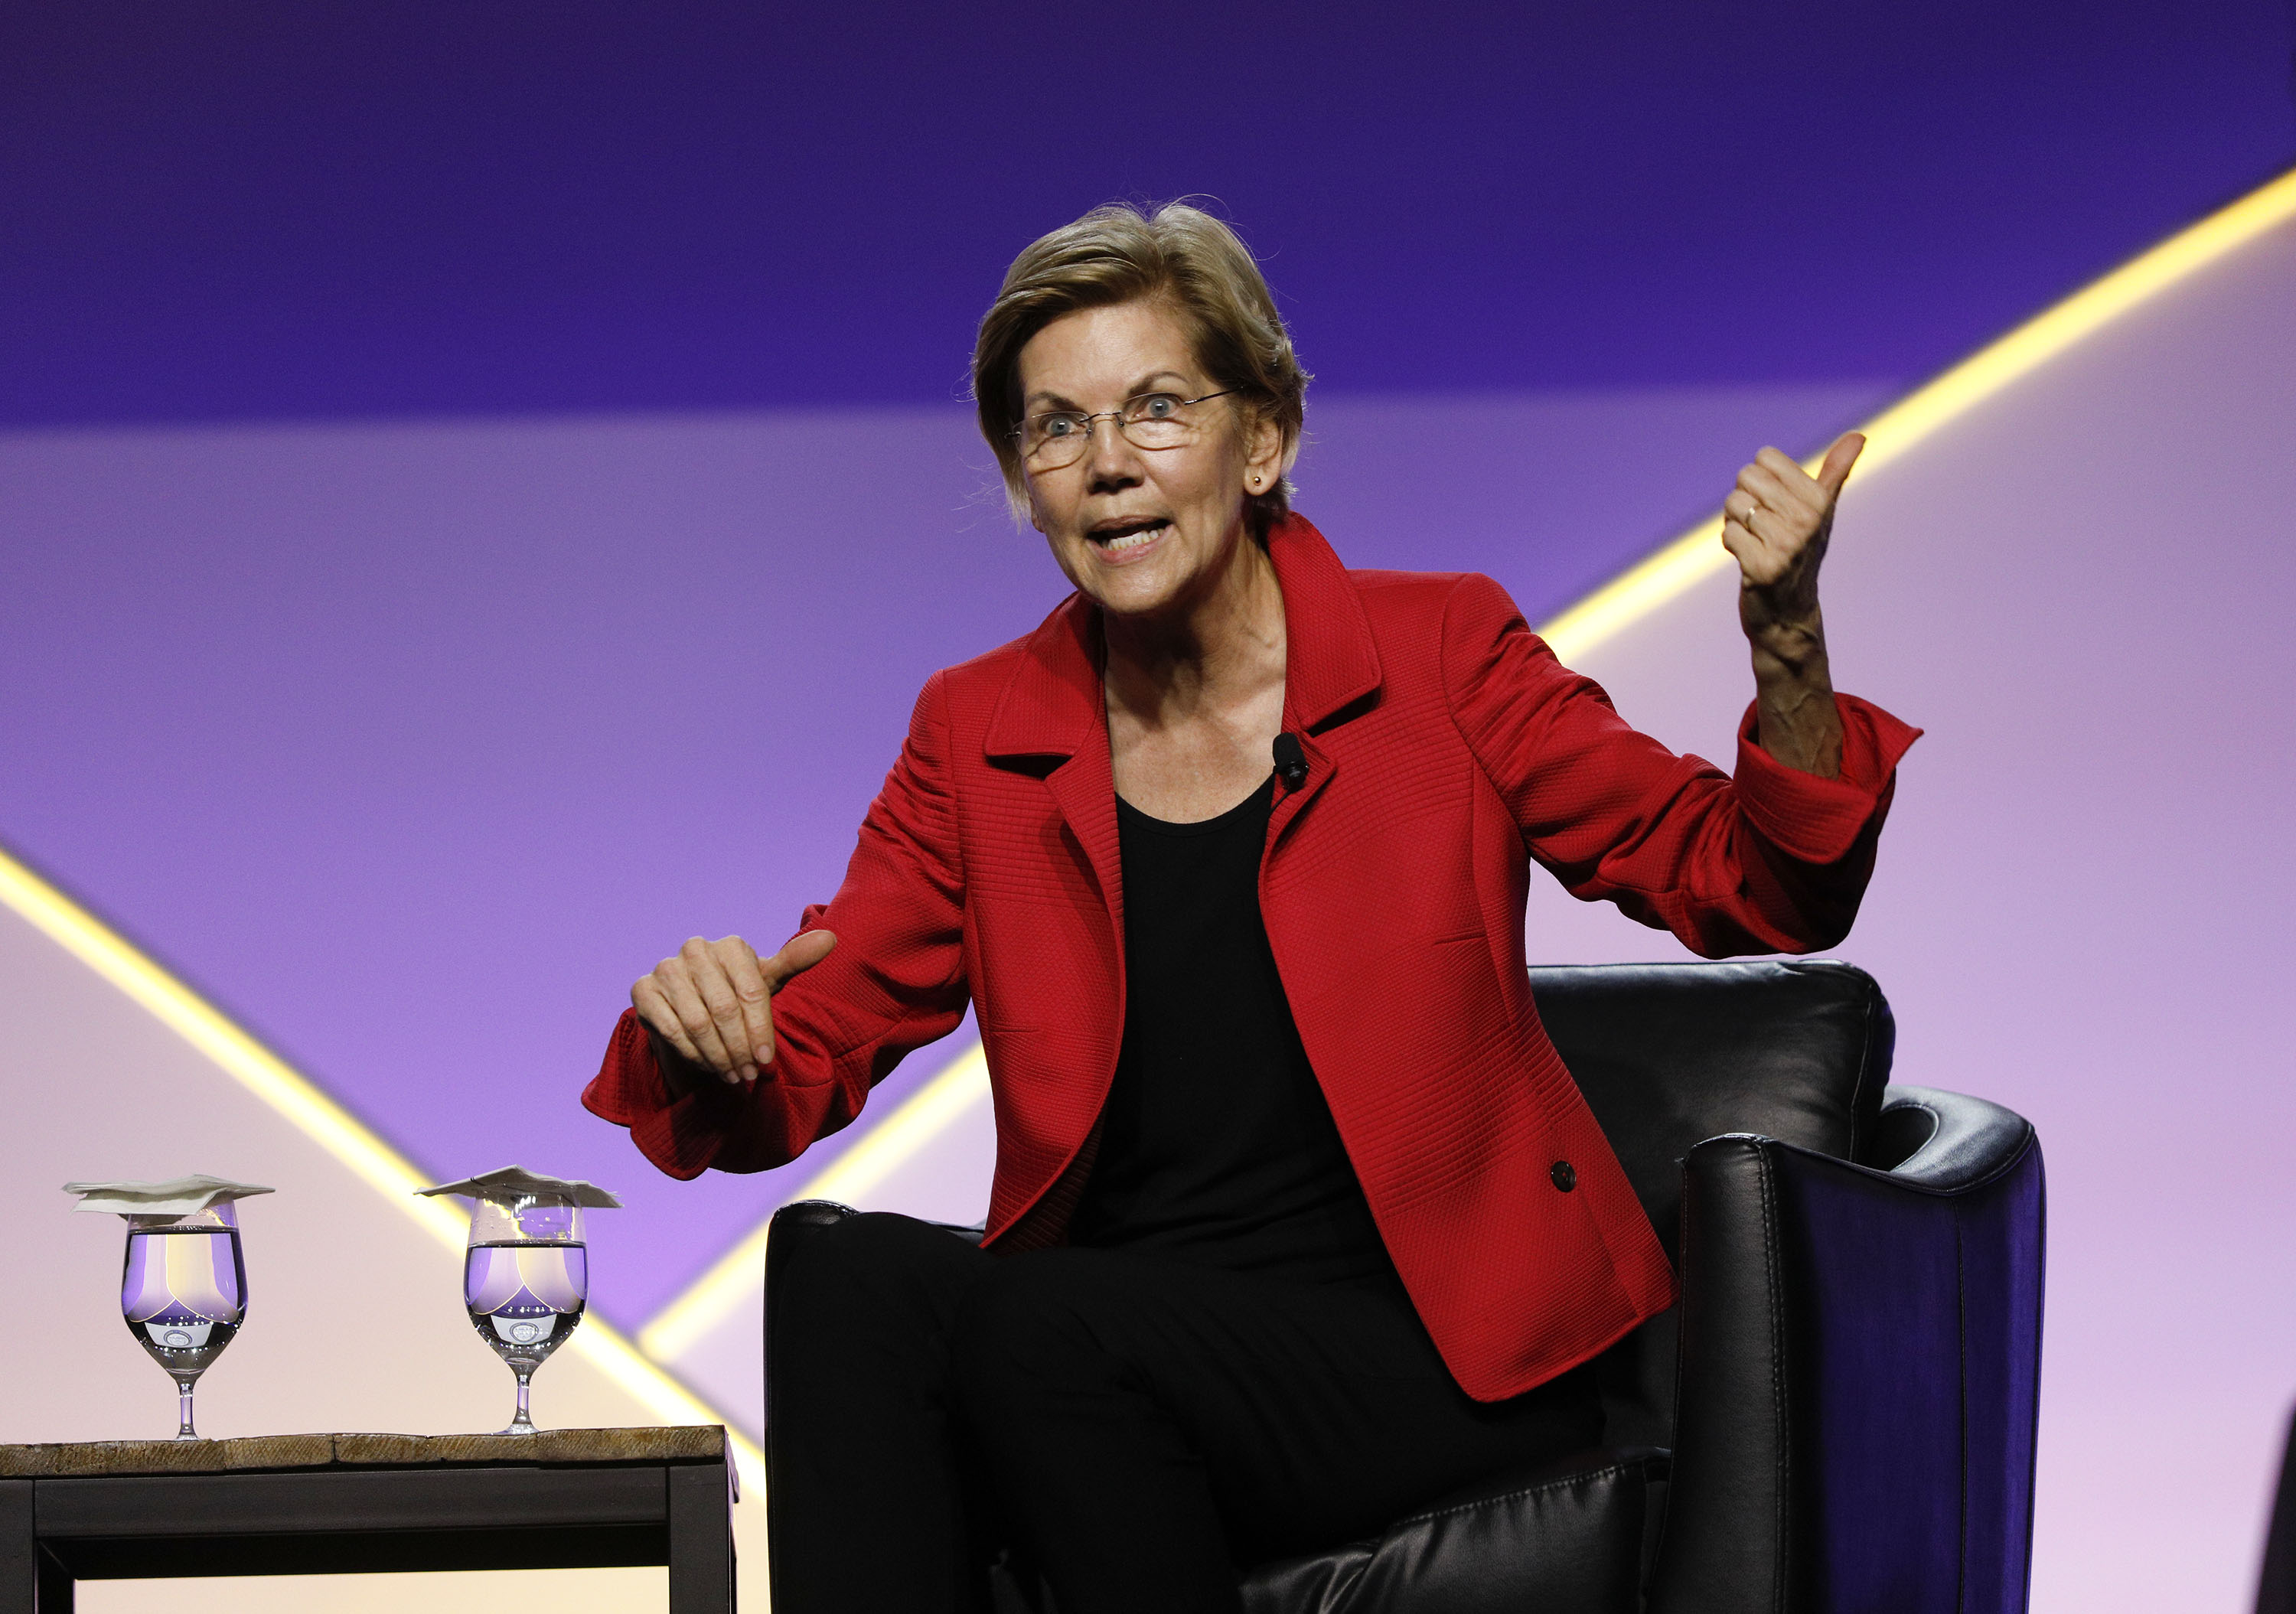 Sen. Elizabeth Warren seated onstage speaking to an audience.